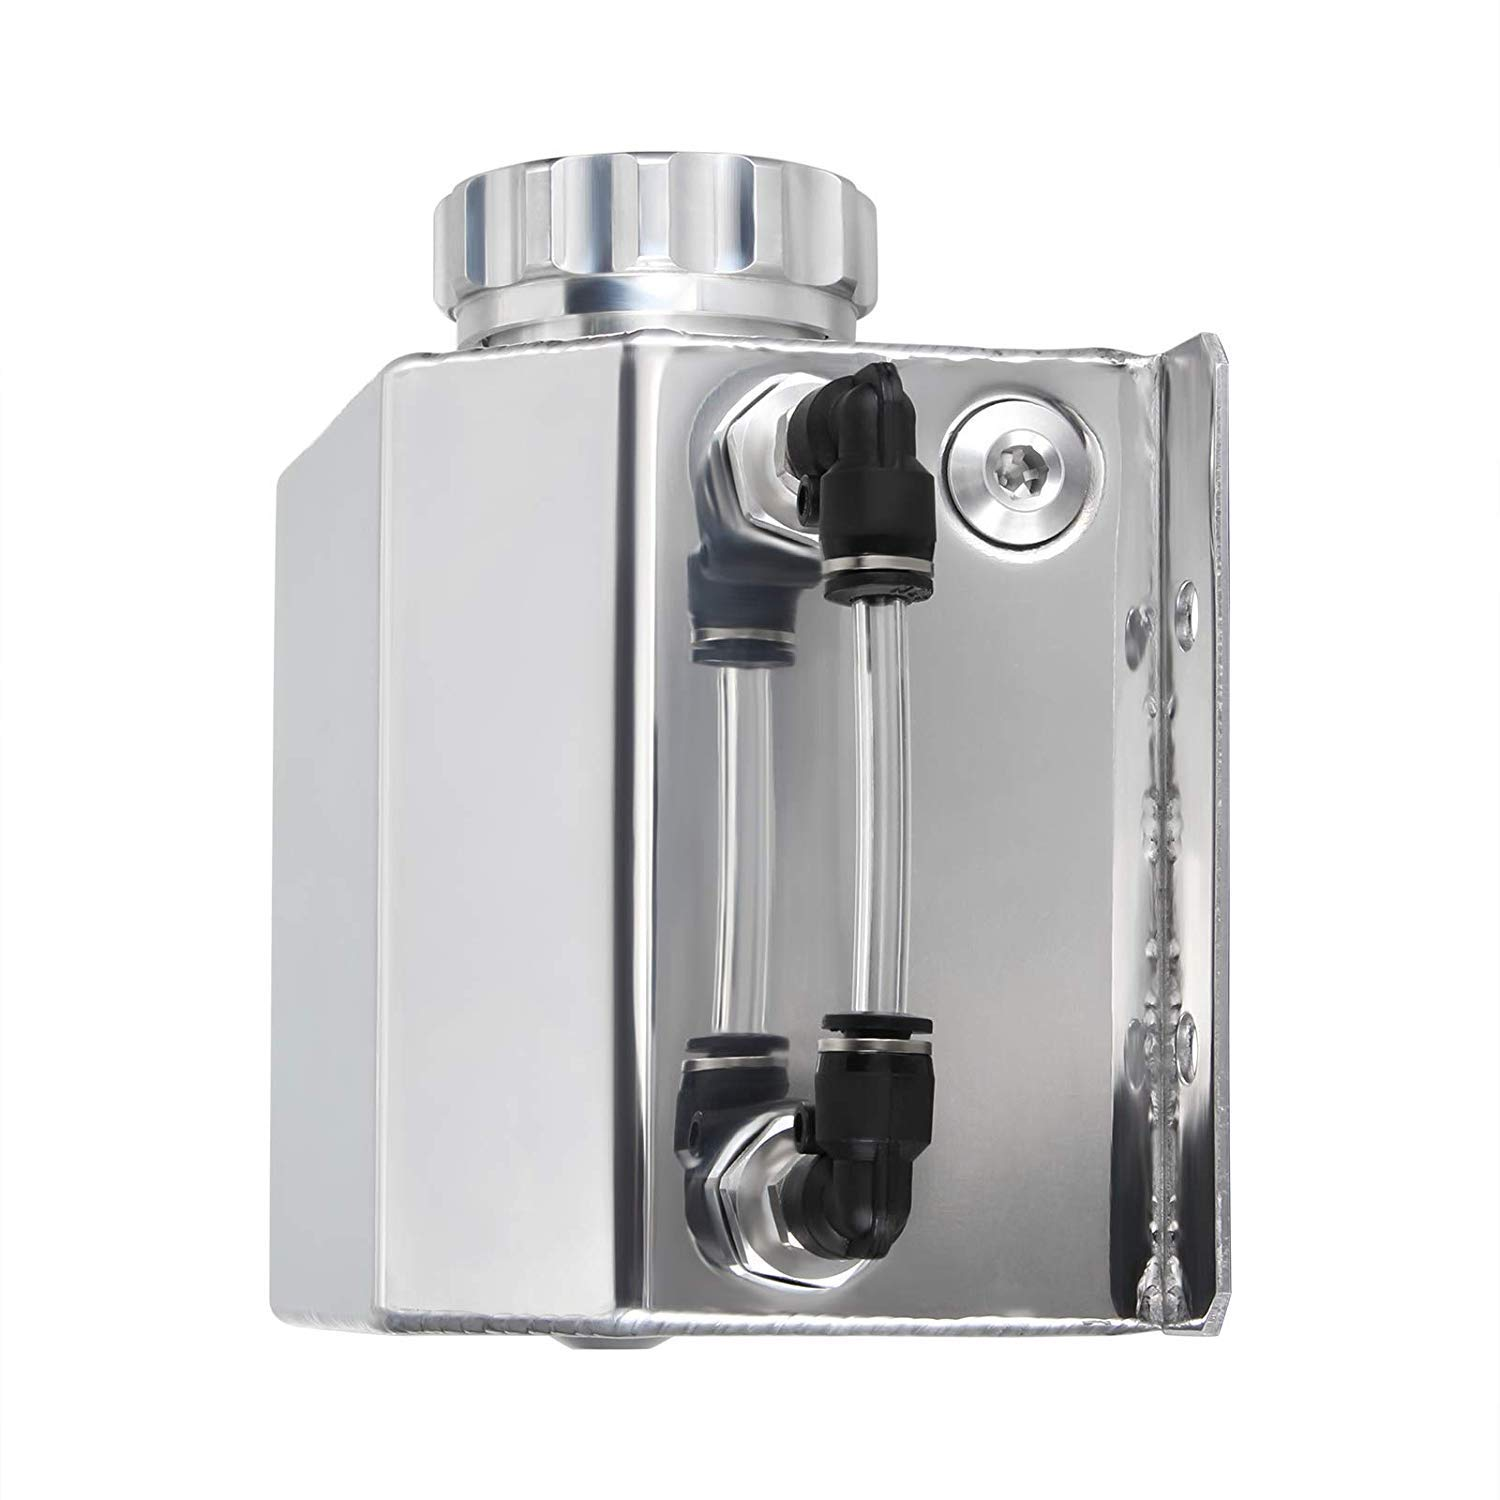 Qauick JDM Coolant Radiator Overflow Recovery Water Tank Reservoir Bottle Polished Aluminum Silver